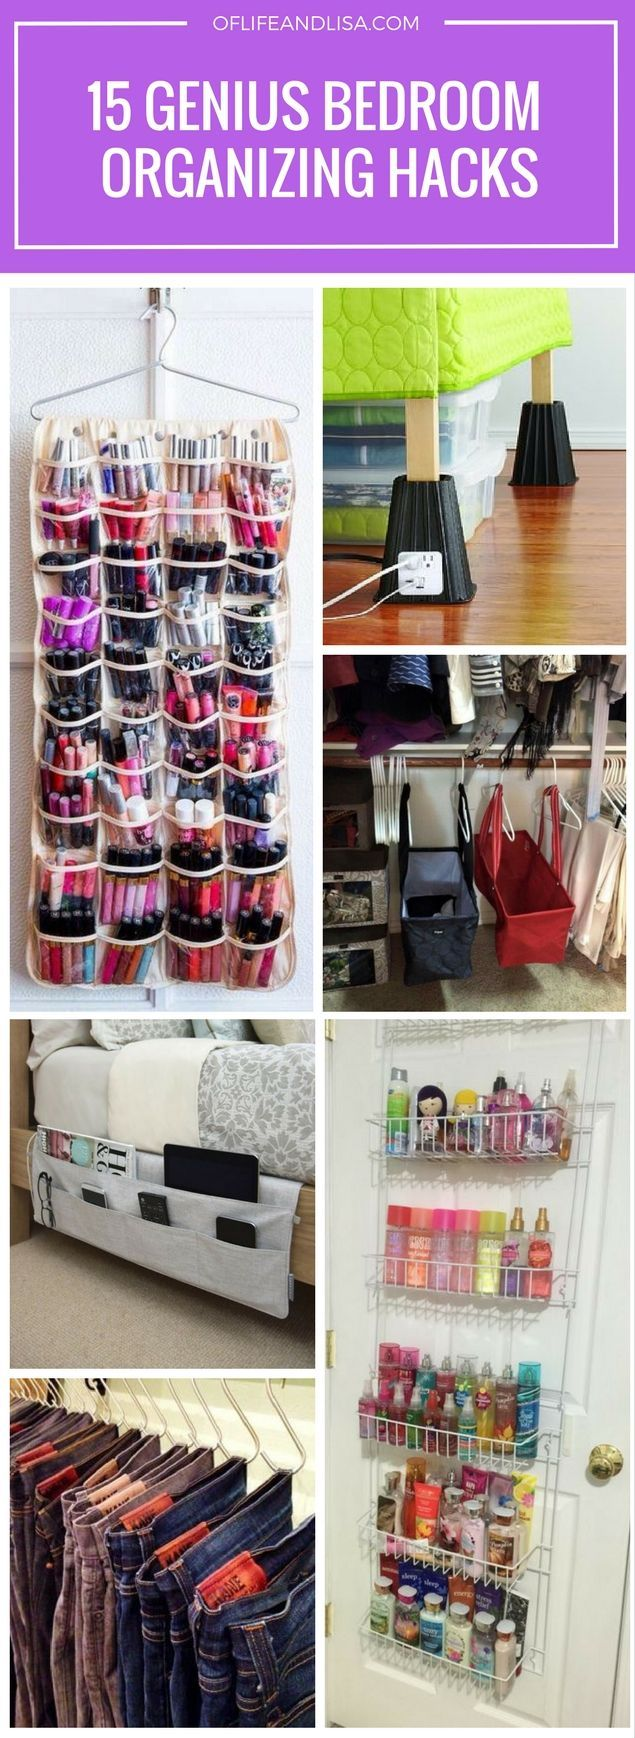 Bedroom organizing ideas that will save you a ton of space!